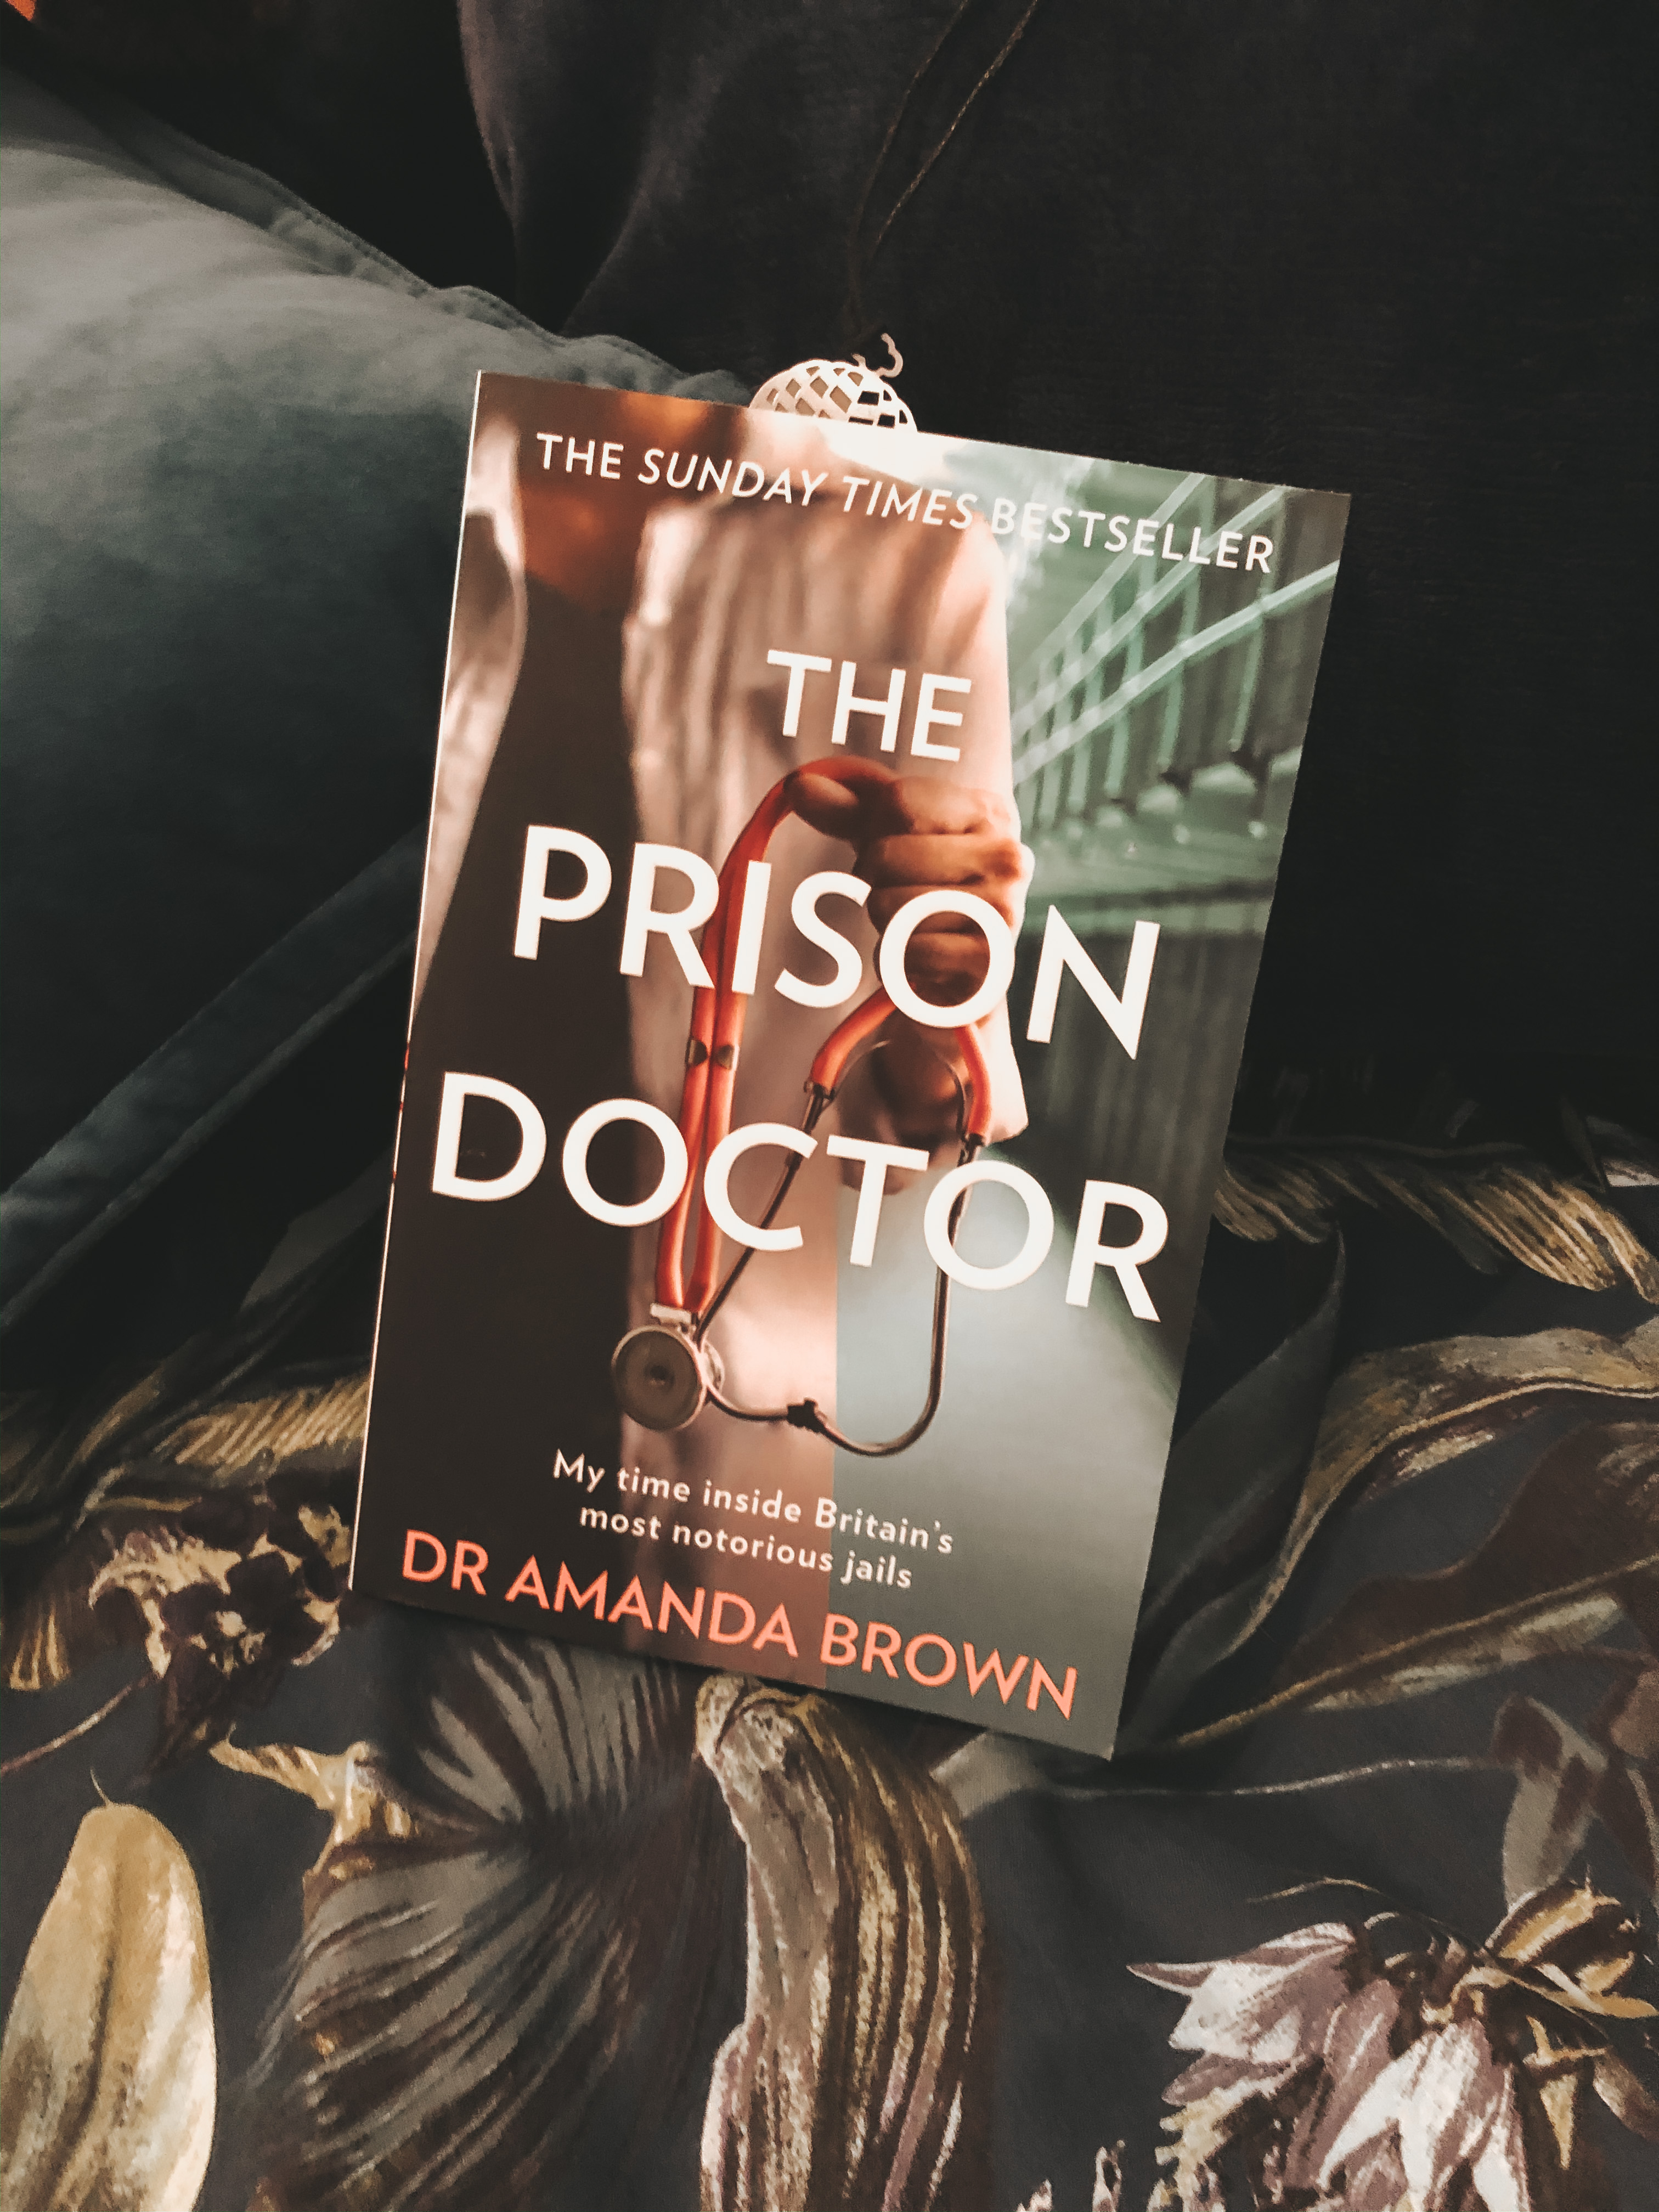 The book 'The Prisn Doctor' propped up with navy cushions